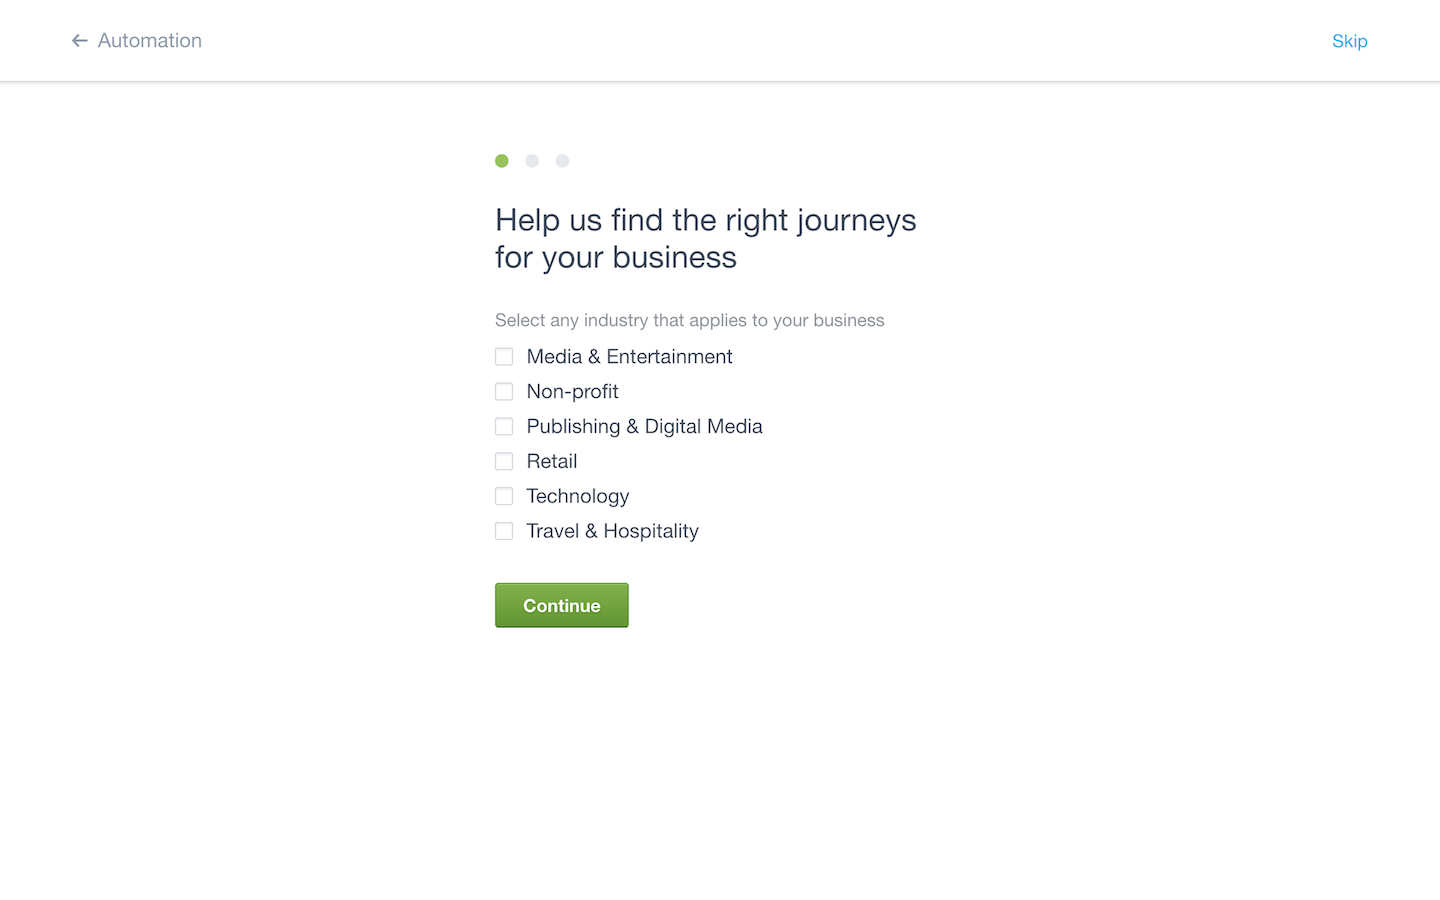 An example of customized UX for onboarding new users. Personalizing your user onboarding is an example of good UX when used correctly.